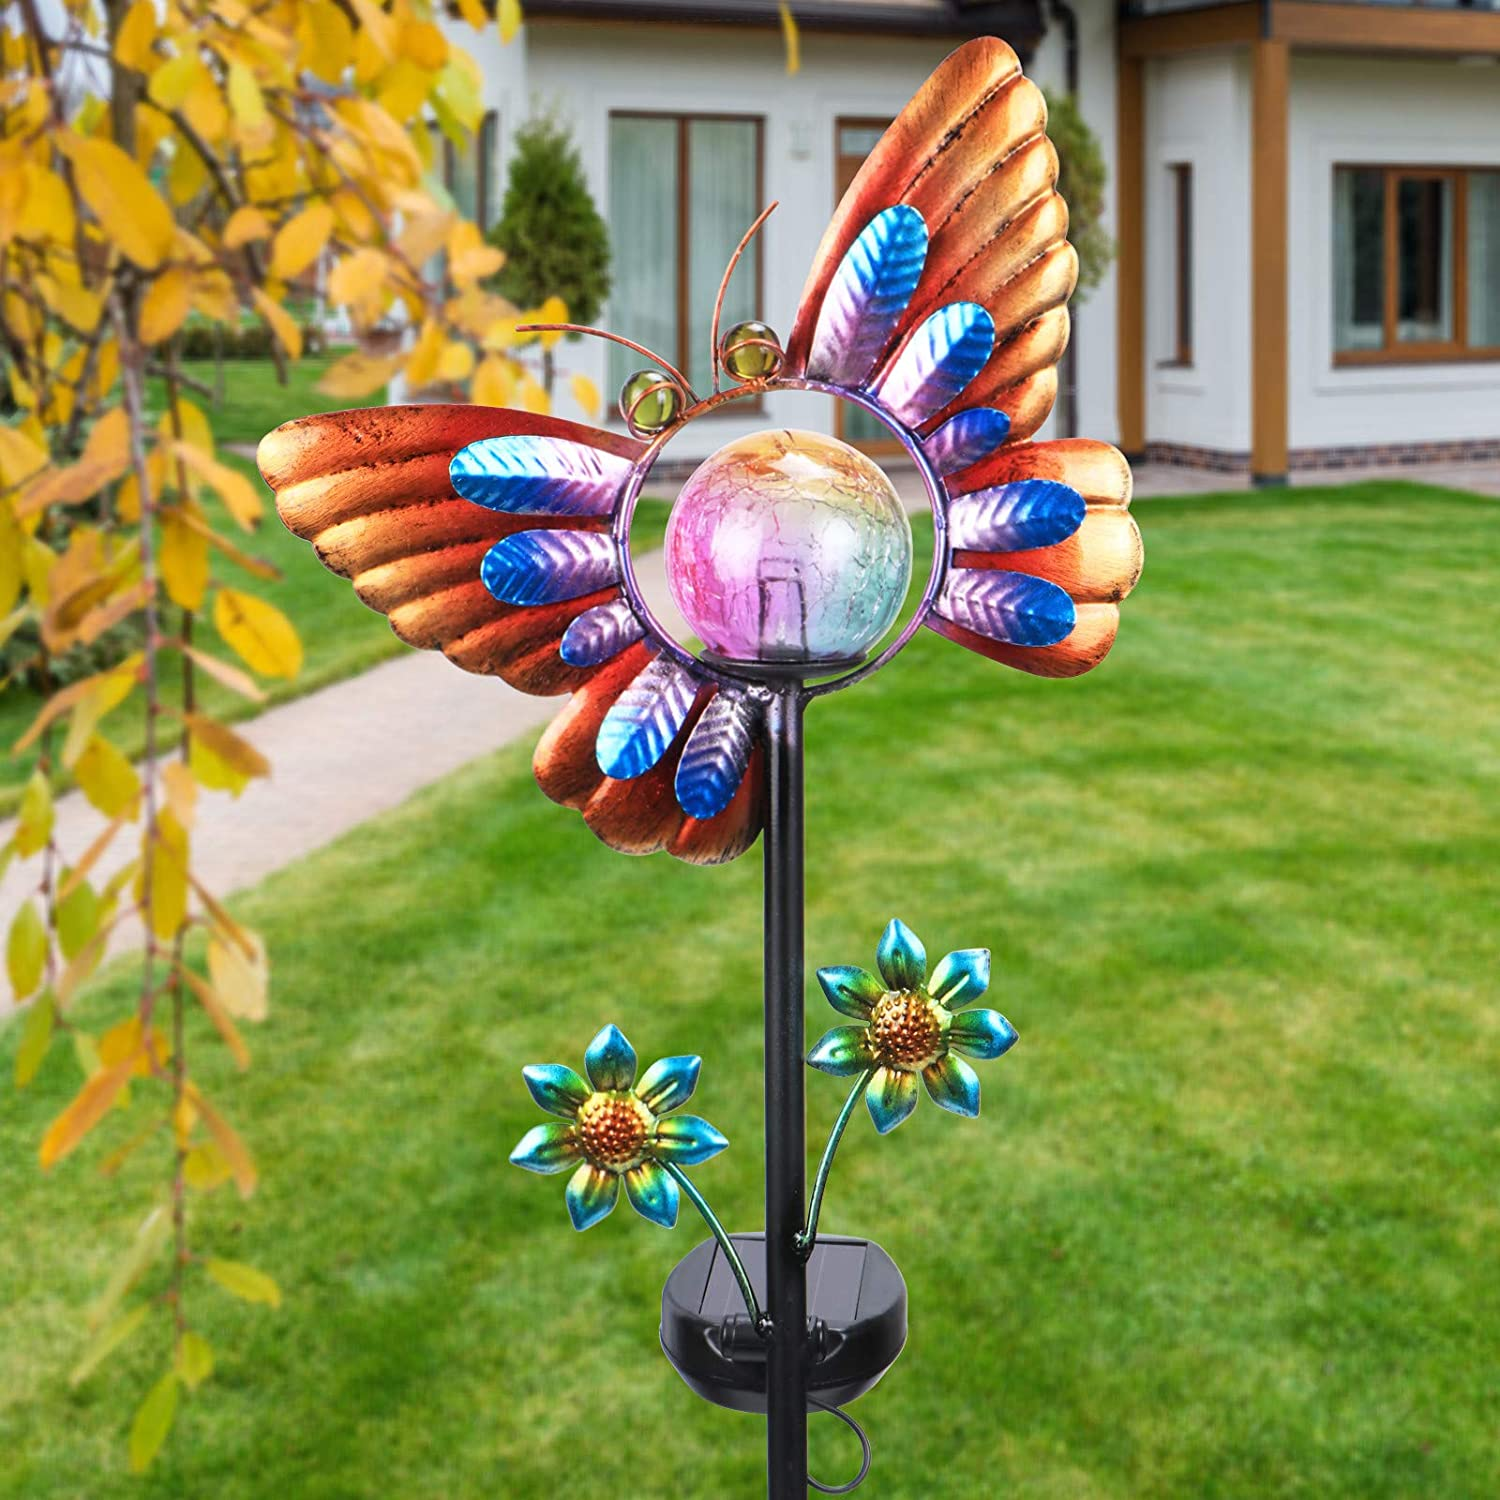 Outdoor Solar Garden Stake Lights Butterfly Waterproof LED Crackle Glass Globe Stake Metal Light for Walkway Pathway Lawn Patio Decor